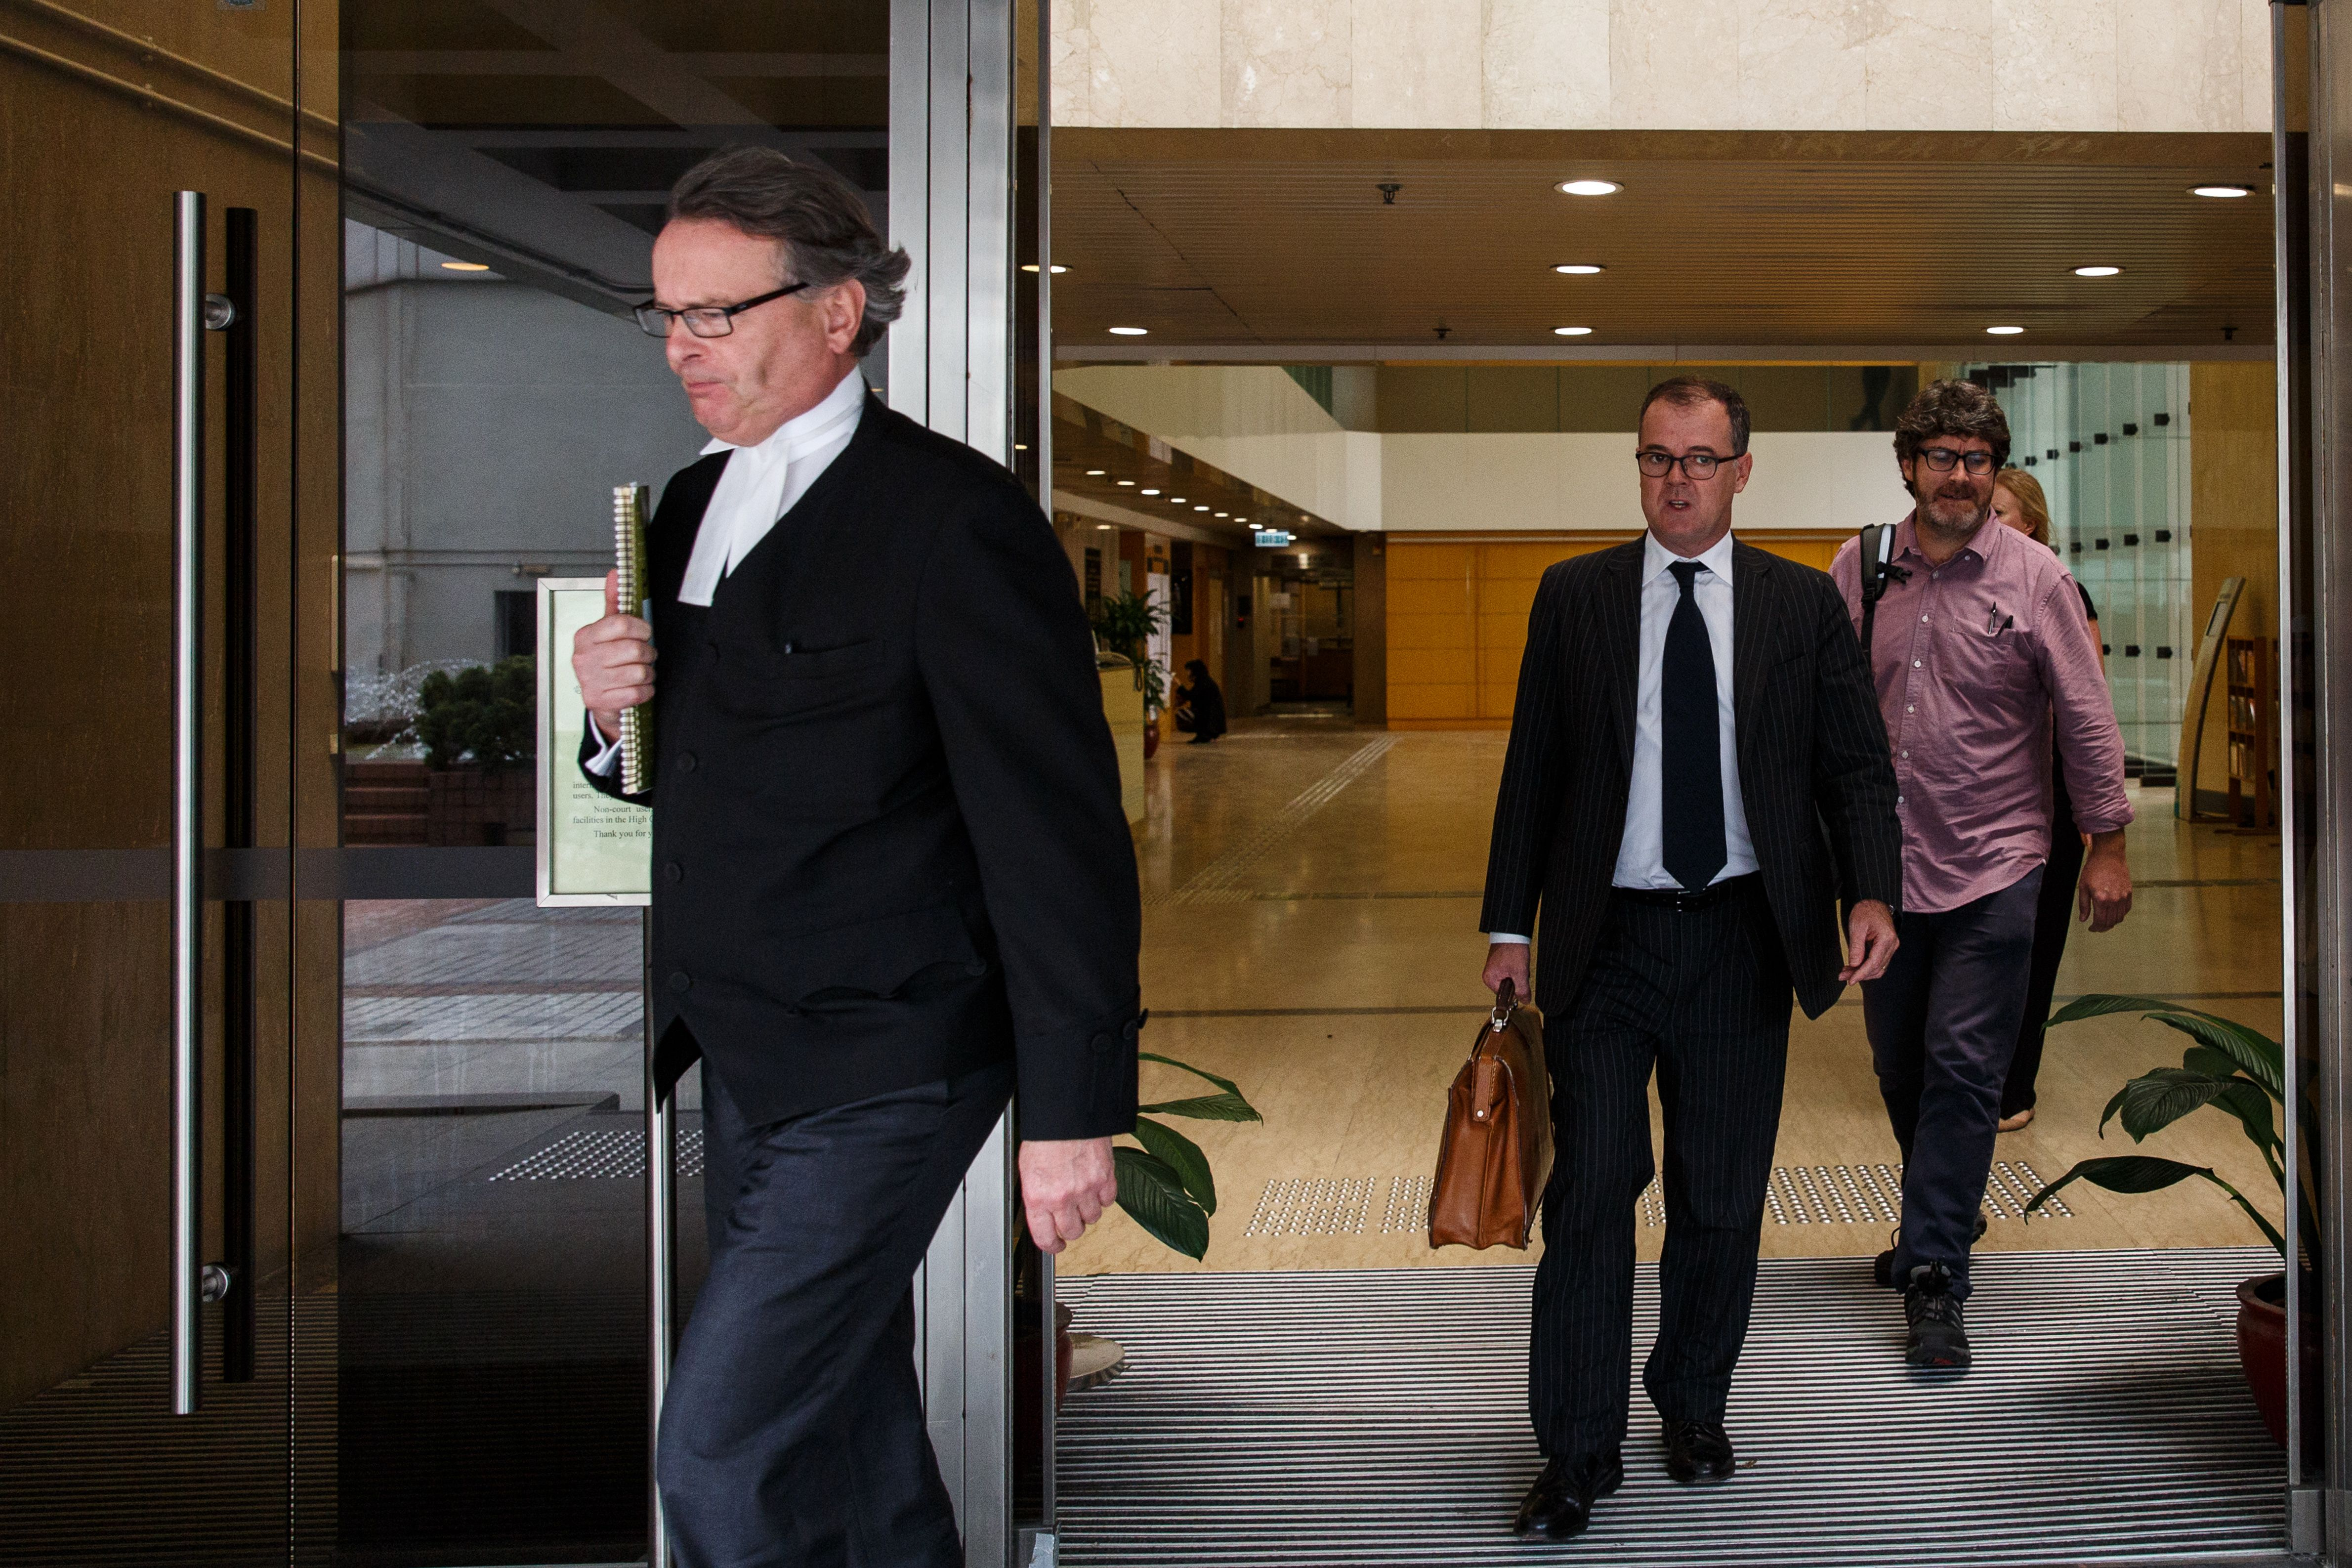 Barrister Tim Owen, left, and solicitor Michael Vidler, center, defending former British banker Rurik Jutting (not seen), 31, who is accused of the murders of two Indonesian women, leave the High Court during a break for lunch in Hong Kong on Oct. 24, 2016, on the first day of what is the city's biggest murder case for years